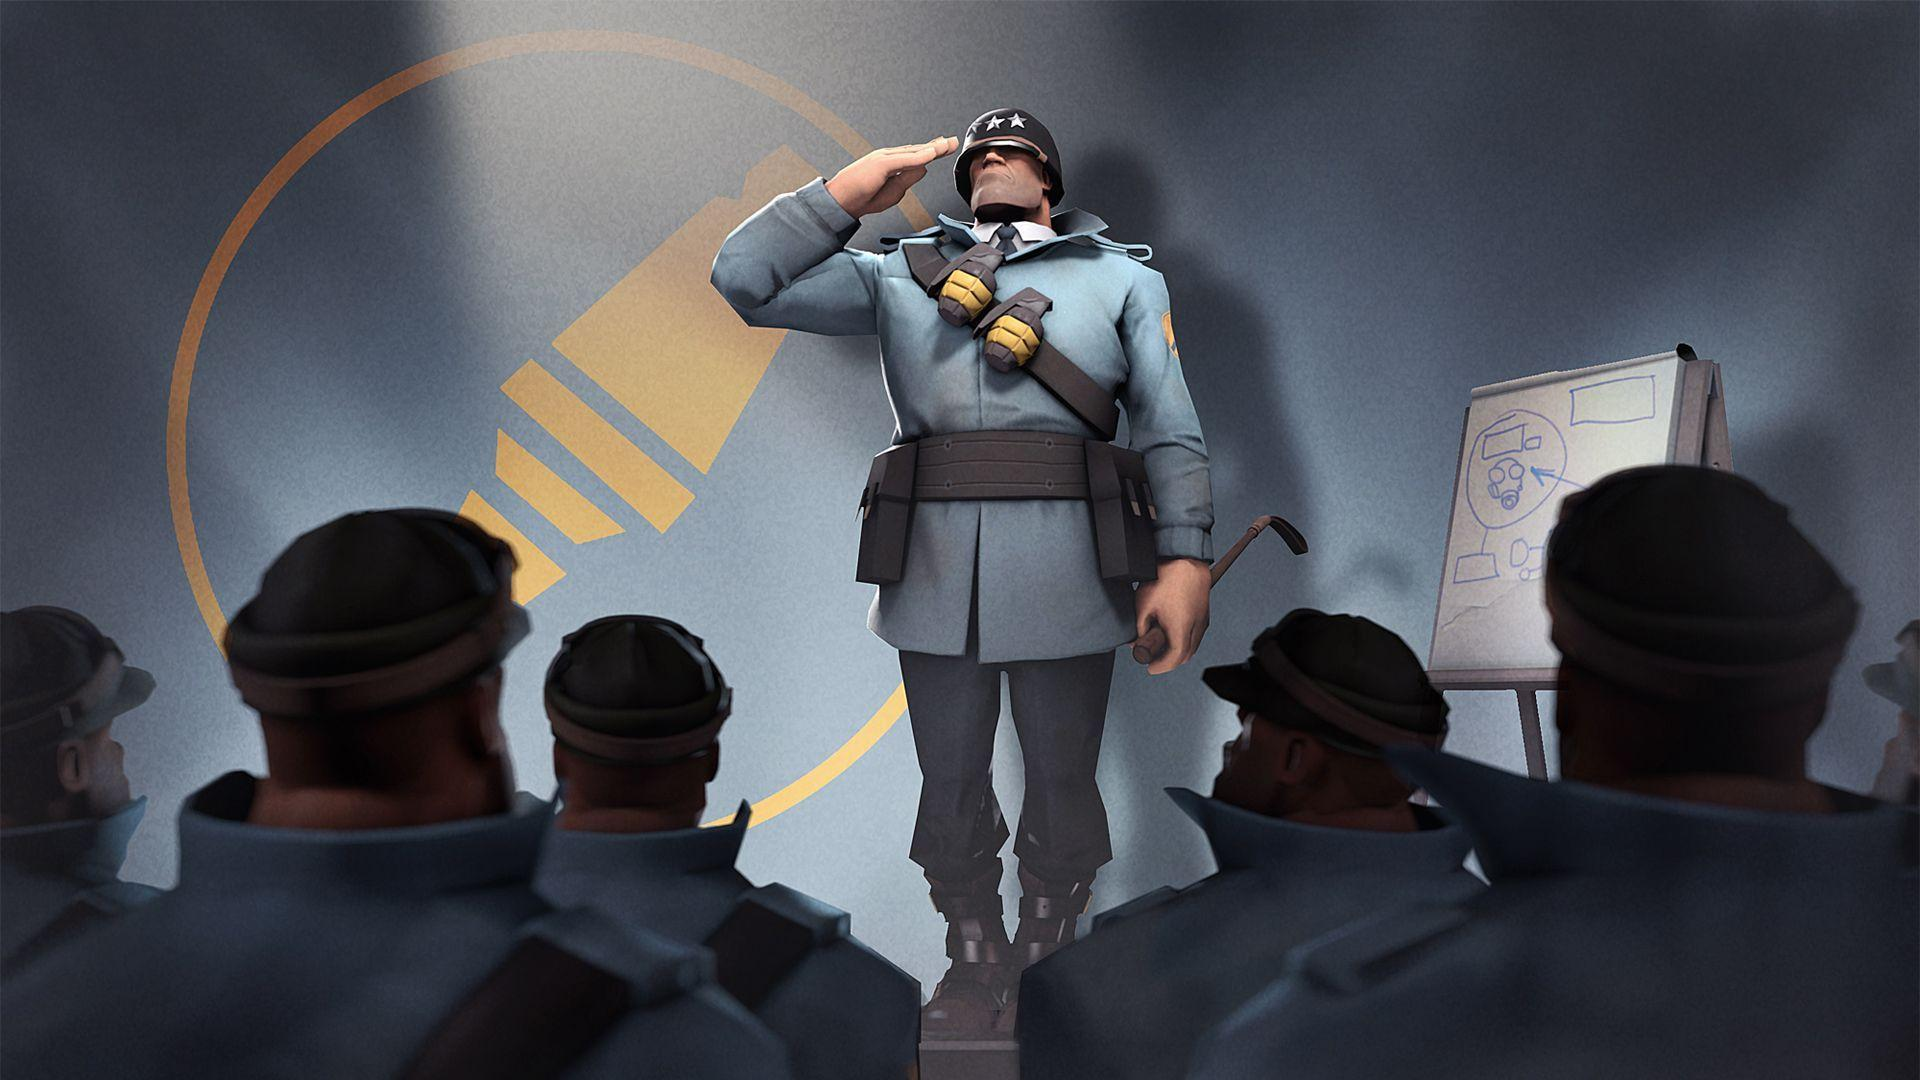 team fortress 2 soldier wallpapers wallpaper cave